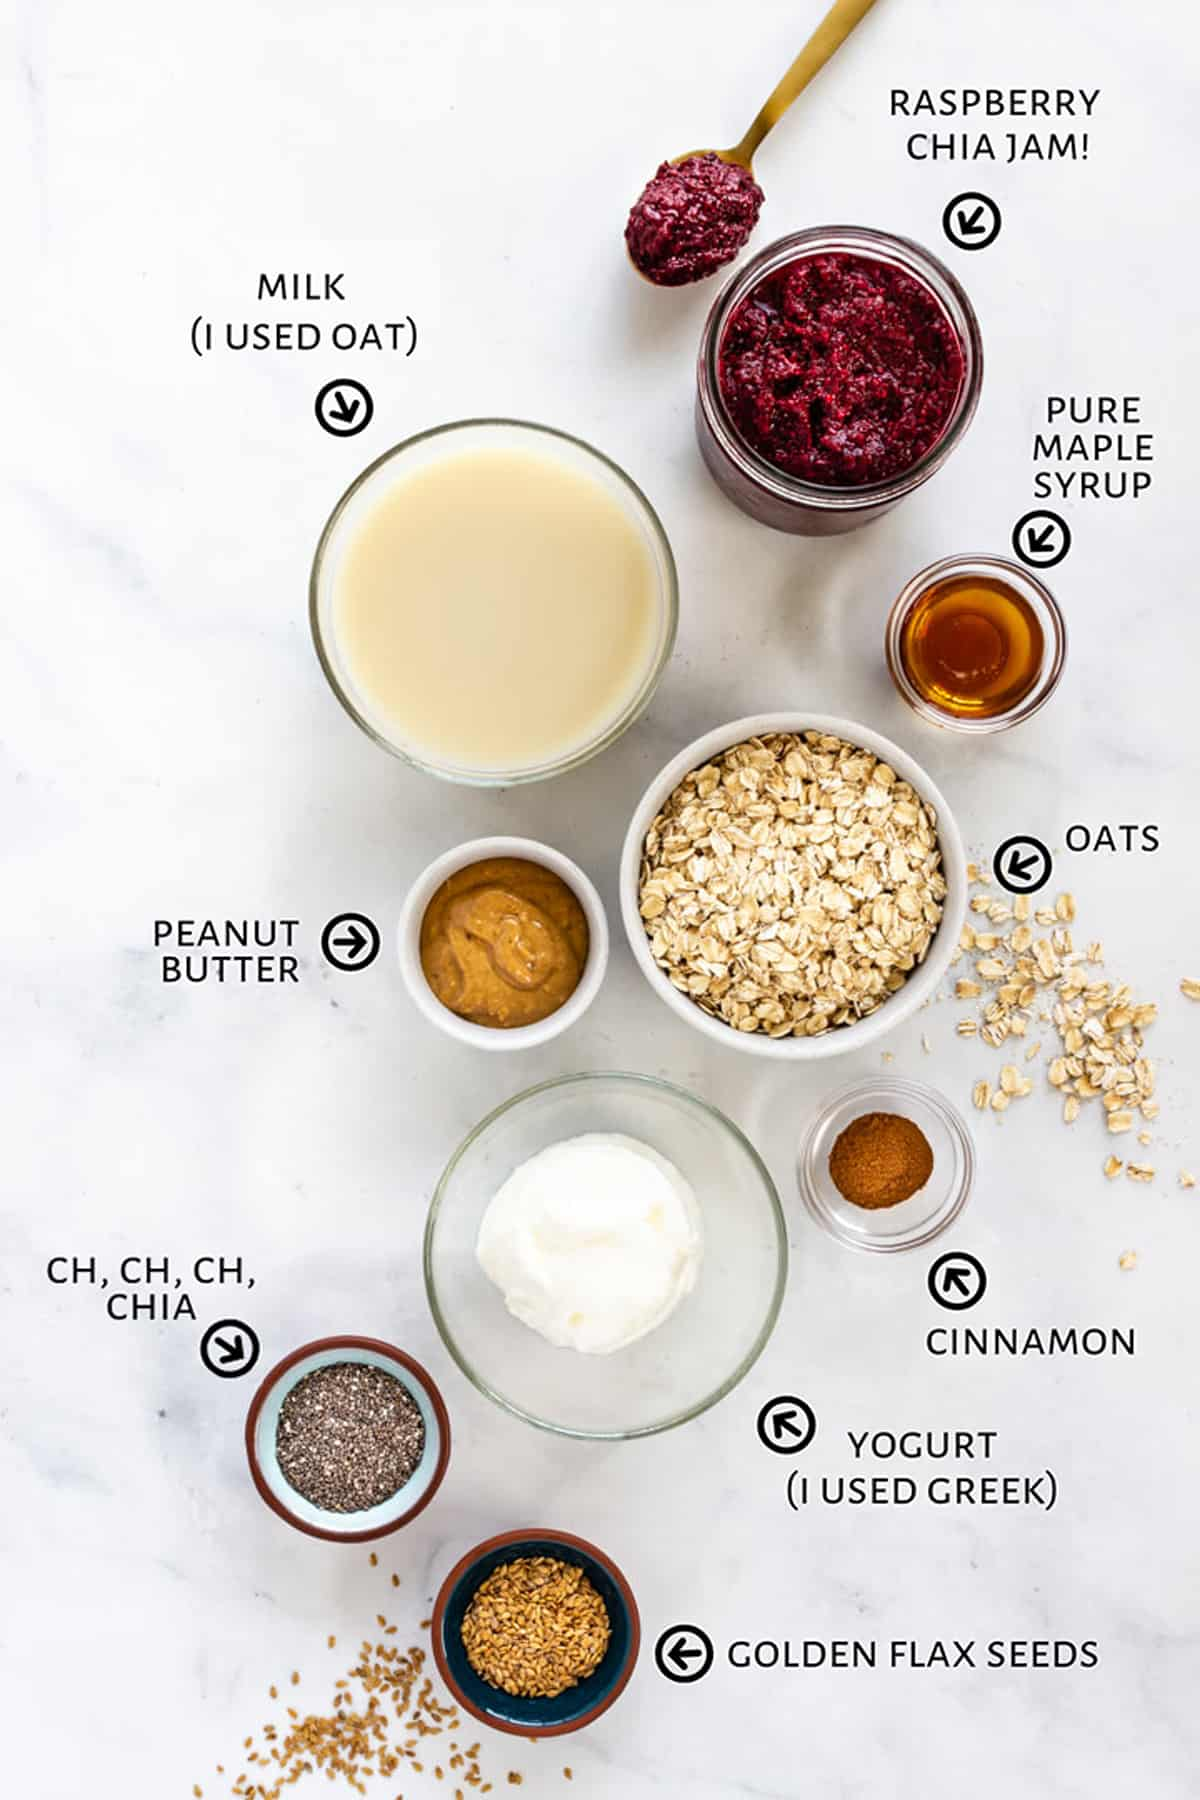 All of the ingredients for the overnight oats are setout in little bowls on a white countertop.